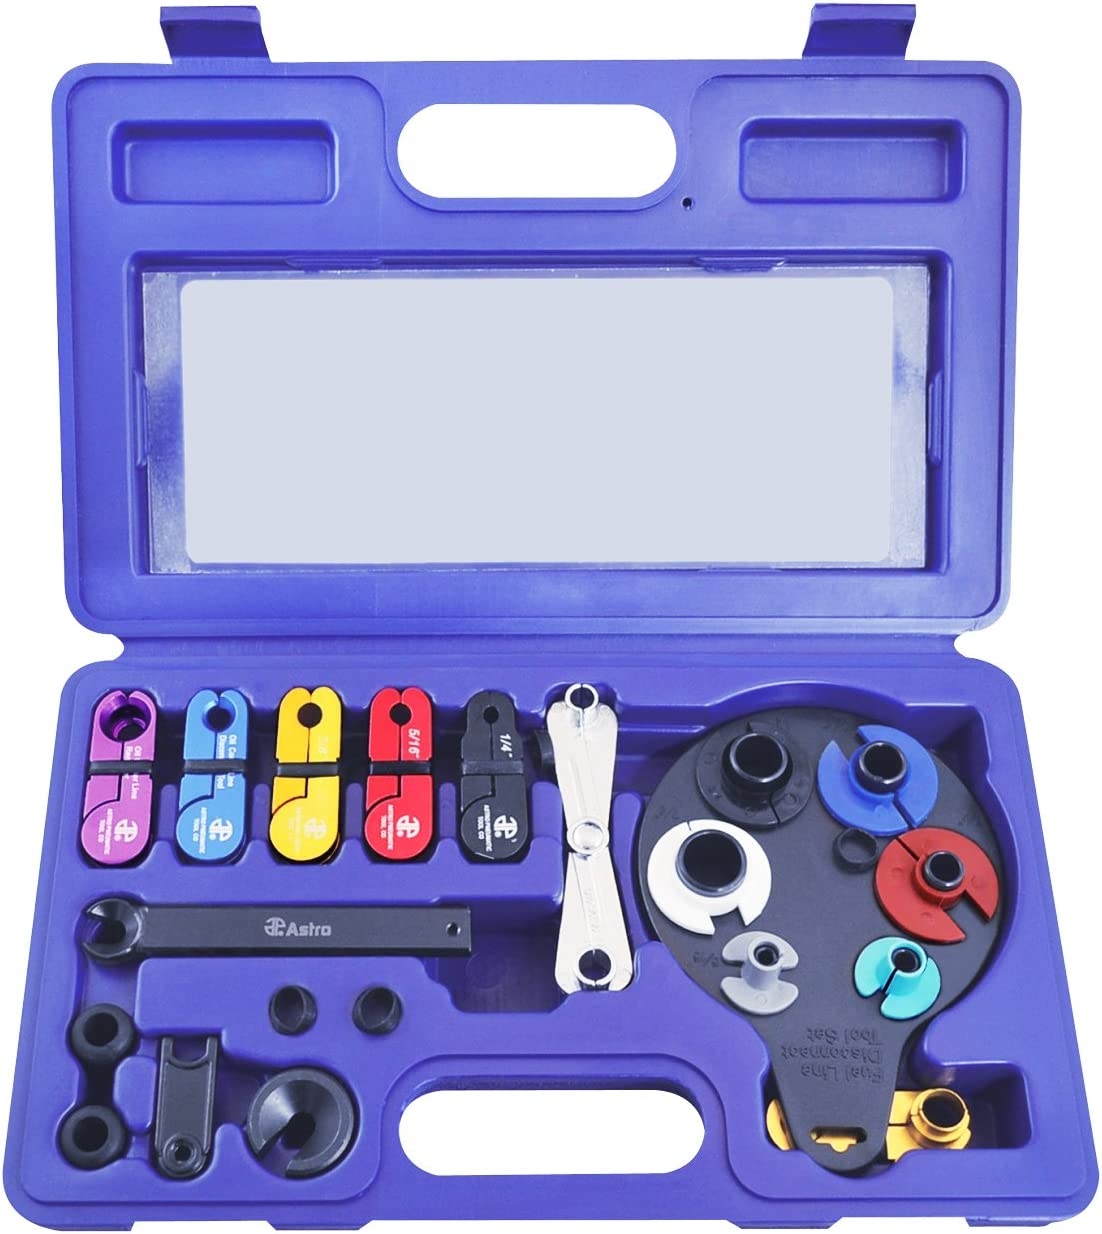 Regular discount Astro 78930 15 Piece Master Special Campaign Disconnect Kit